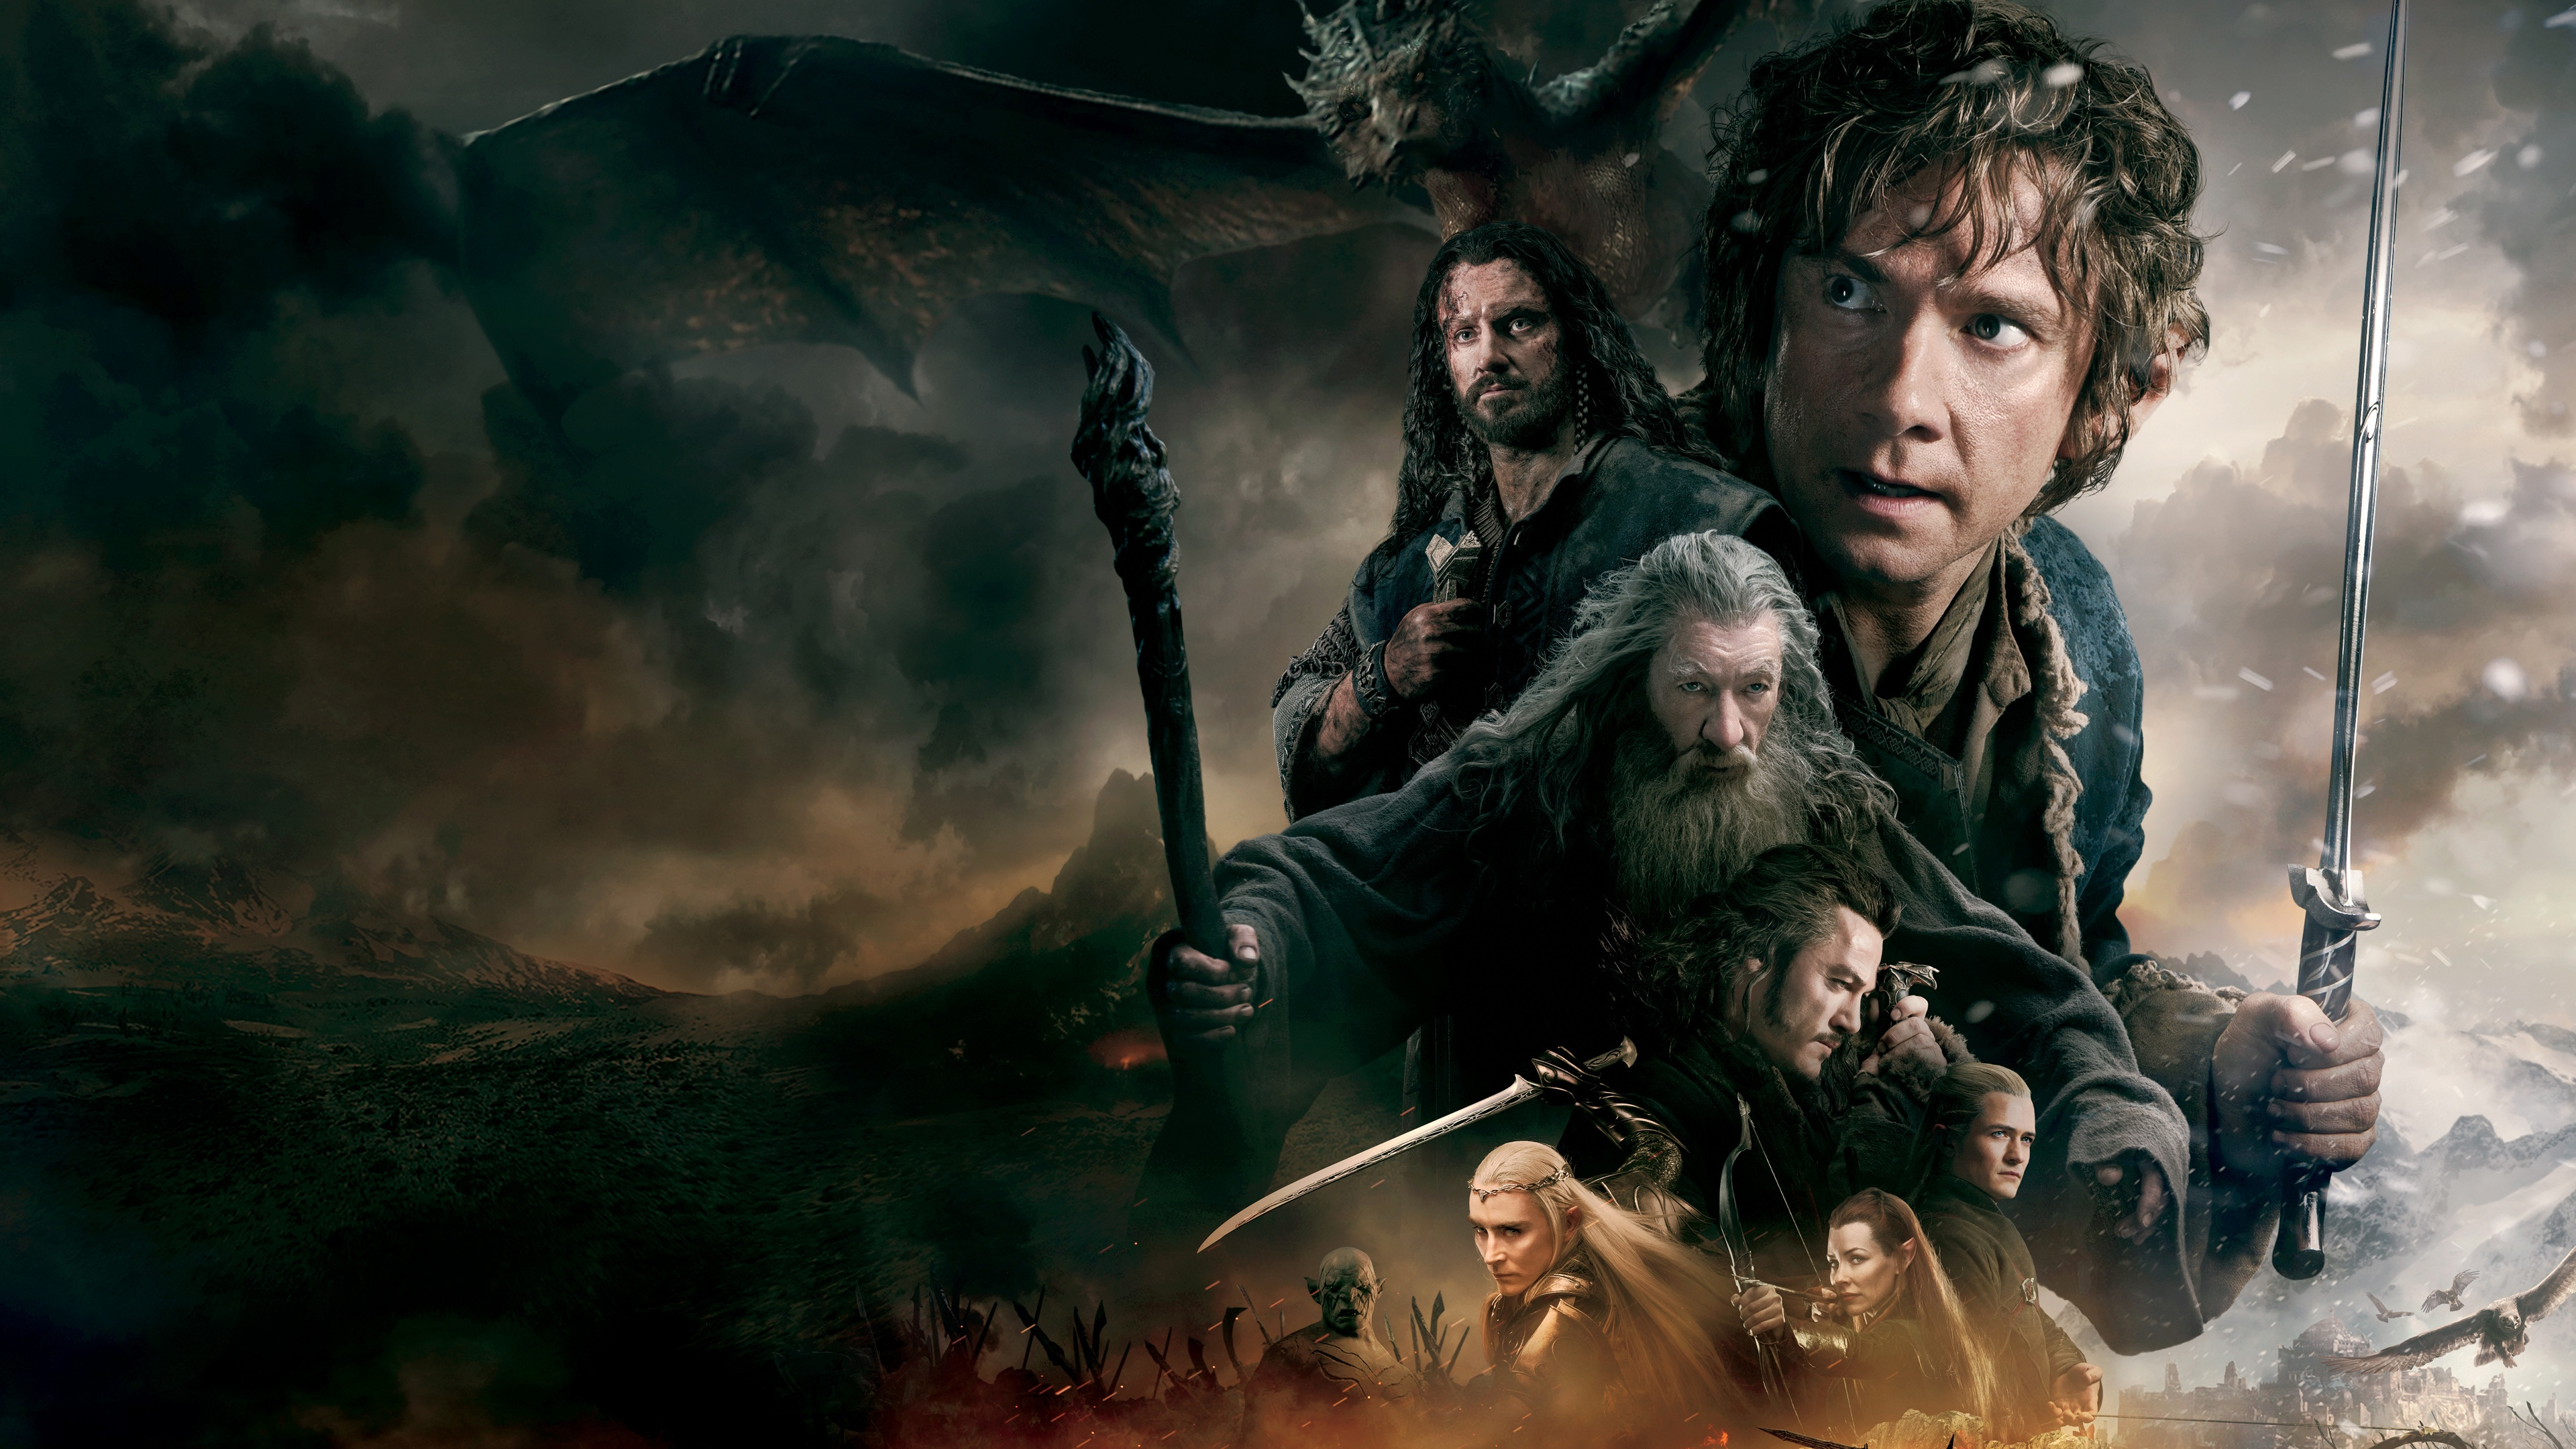 The Hobbit The Battle of the Five Armies 2014 3840x2160